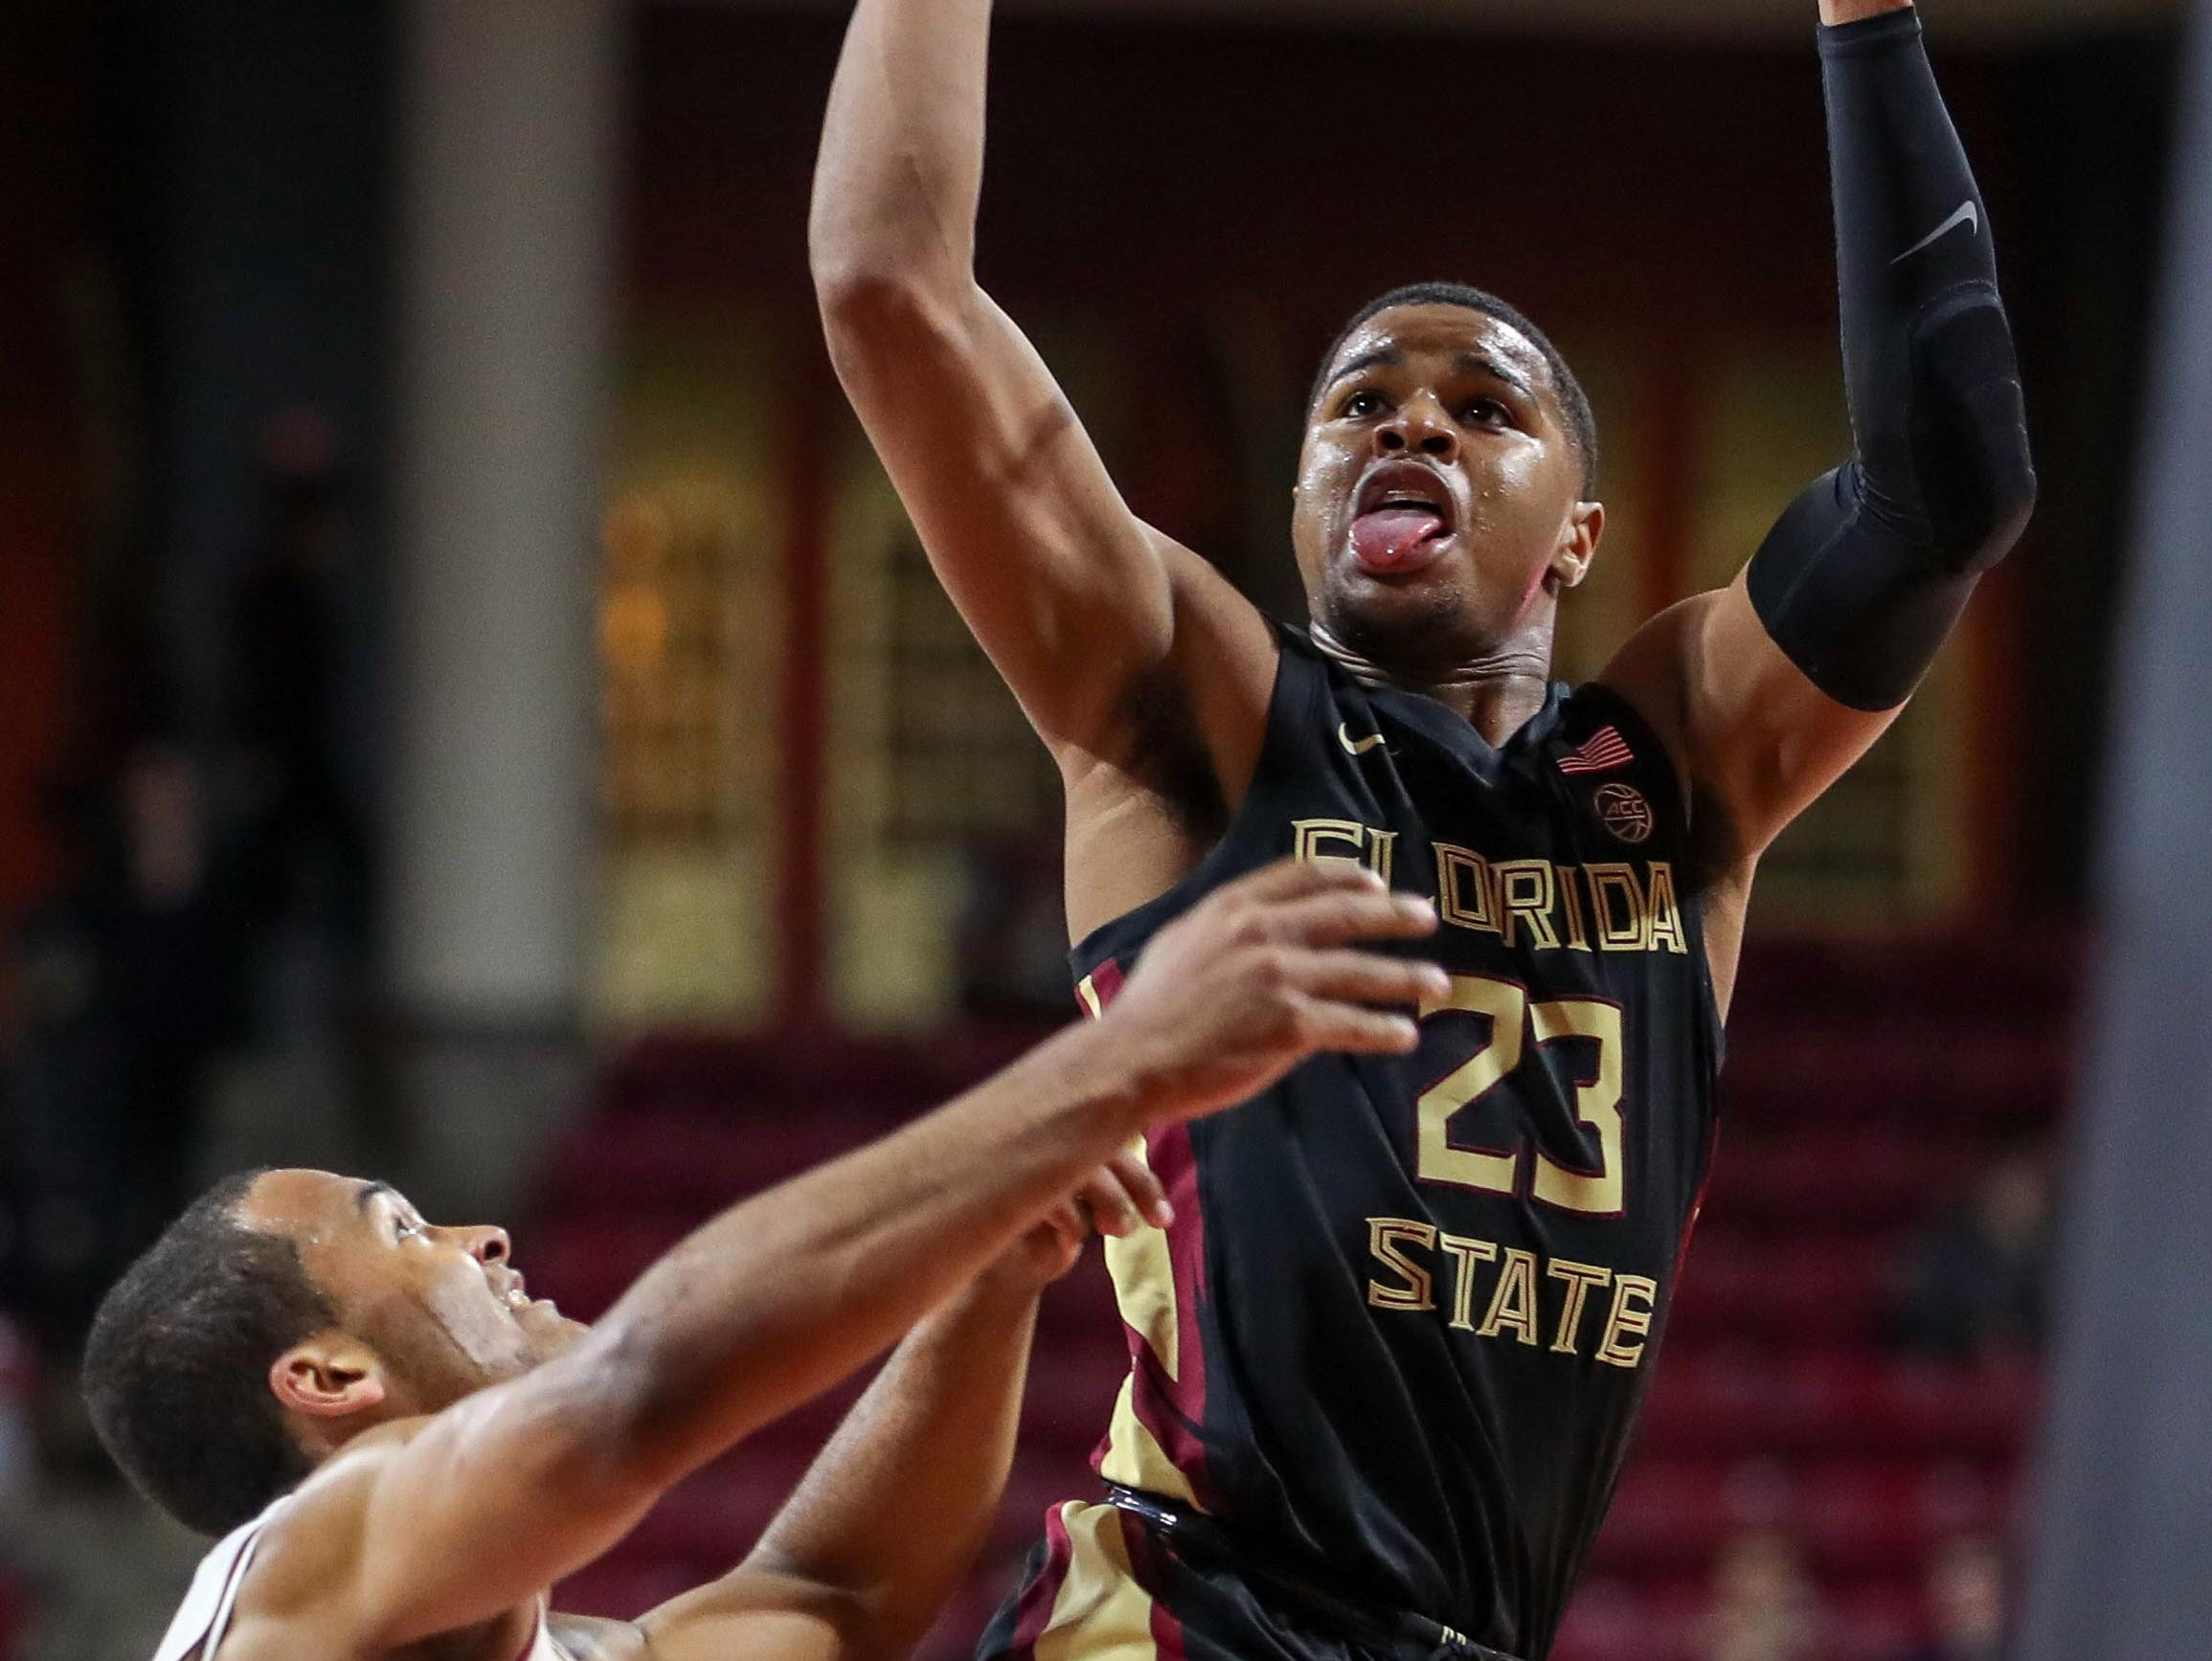 Jan 20, 2019; Chestnut Hill, MA, USA; Florida State Seminoles guard M.J. Walker (23) shoots against Boston College Eagles forward Steffon Mitchell (41) during the first half at Conte Forum. Mandatory Credit: Paul Rutherford-USA TODAY Sports